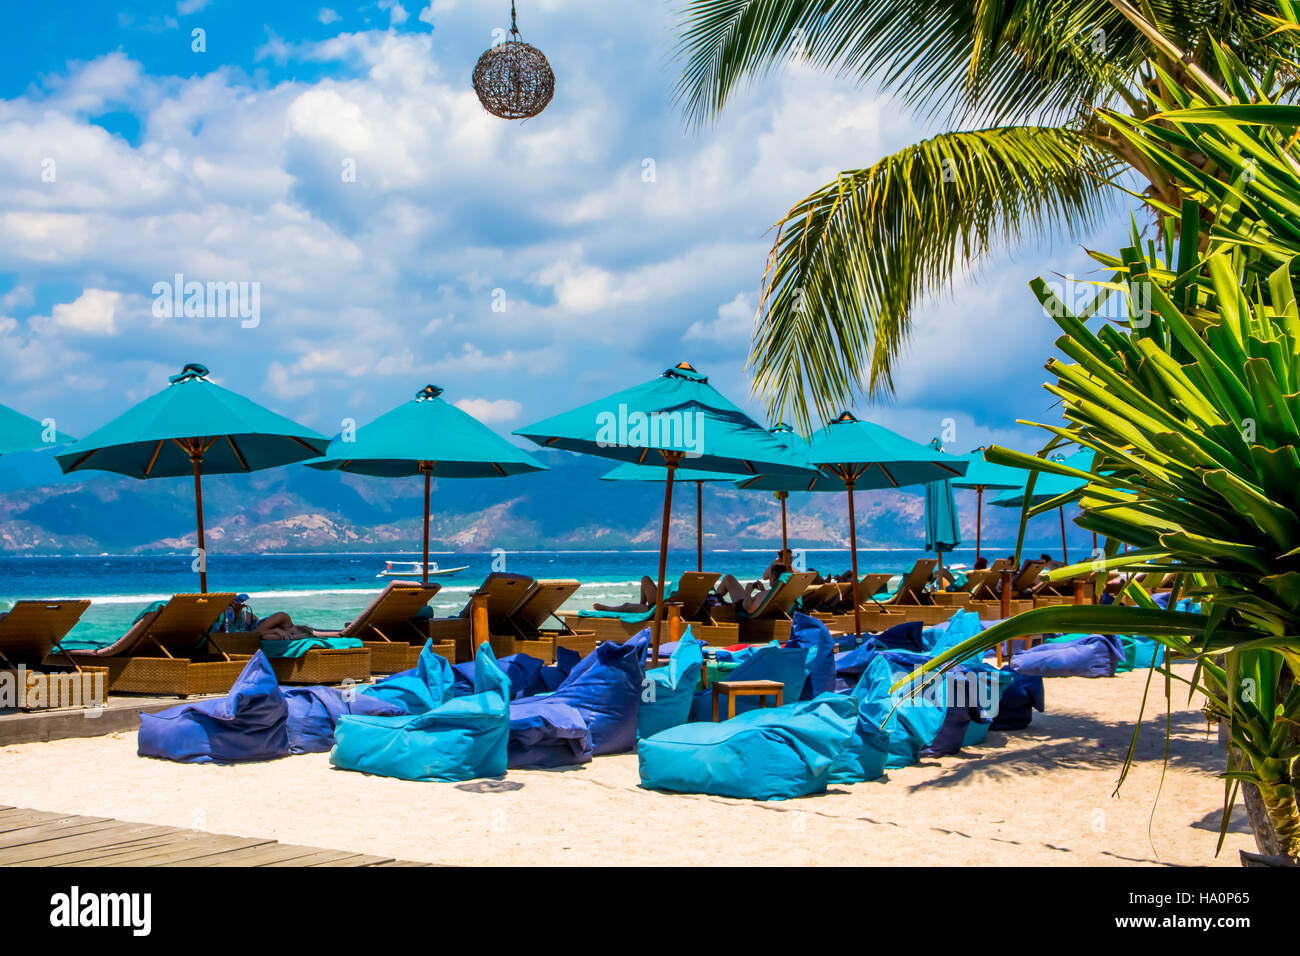 Beach  Lounge Chairs And Bean Bags On Sand Against Blue Sky and Sea - Stock Image